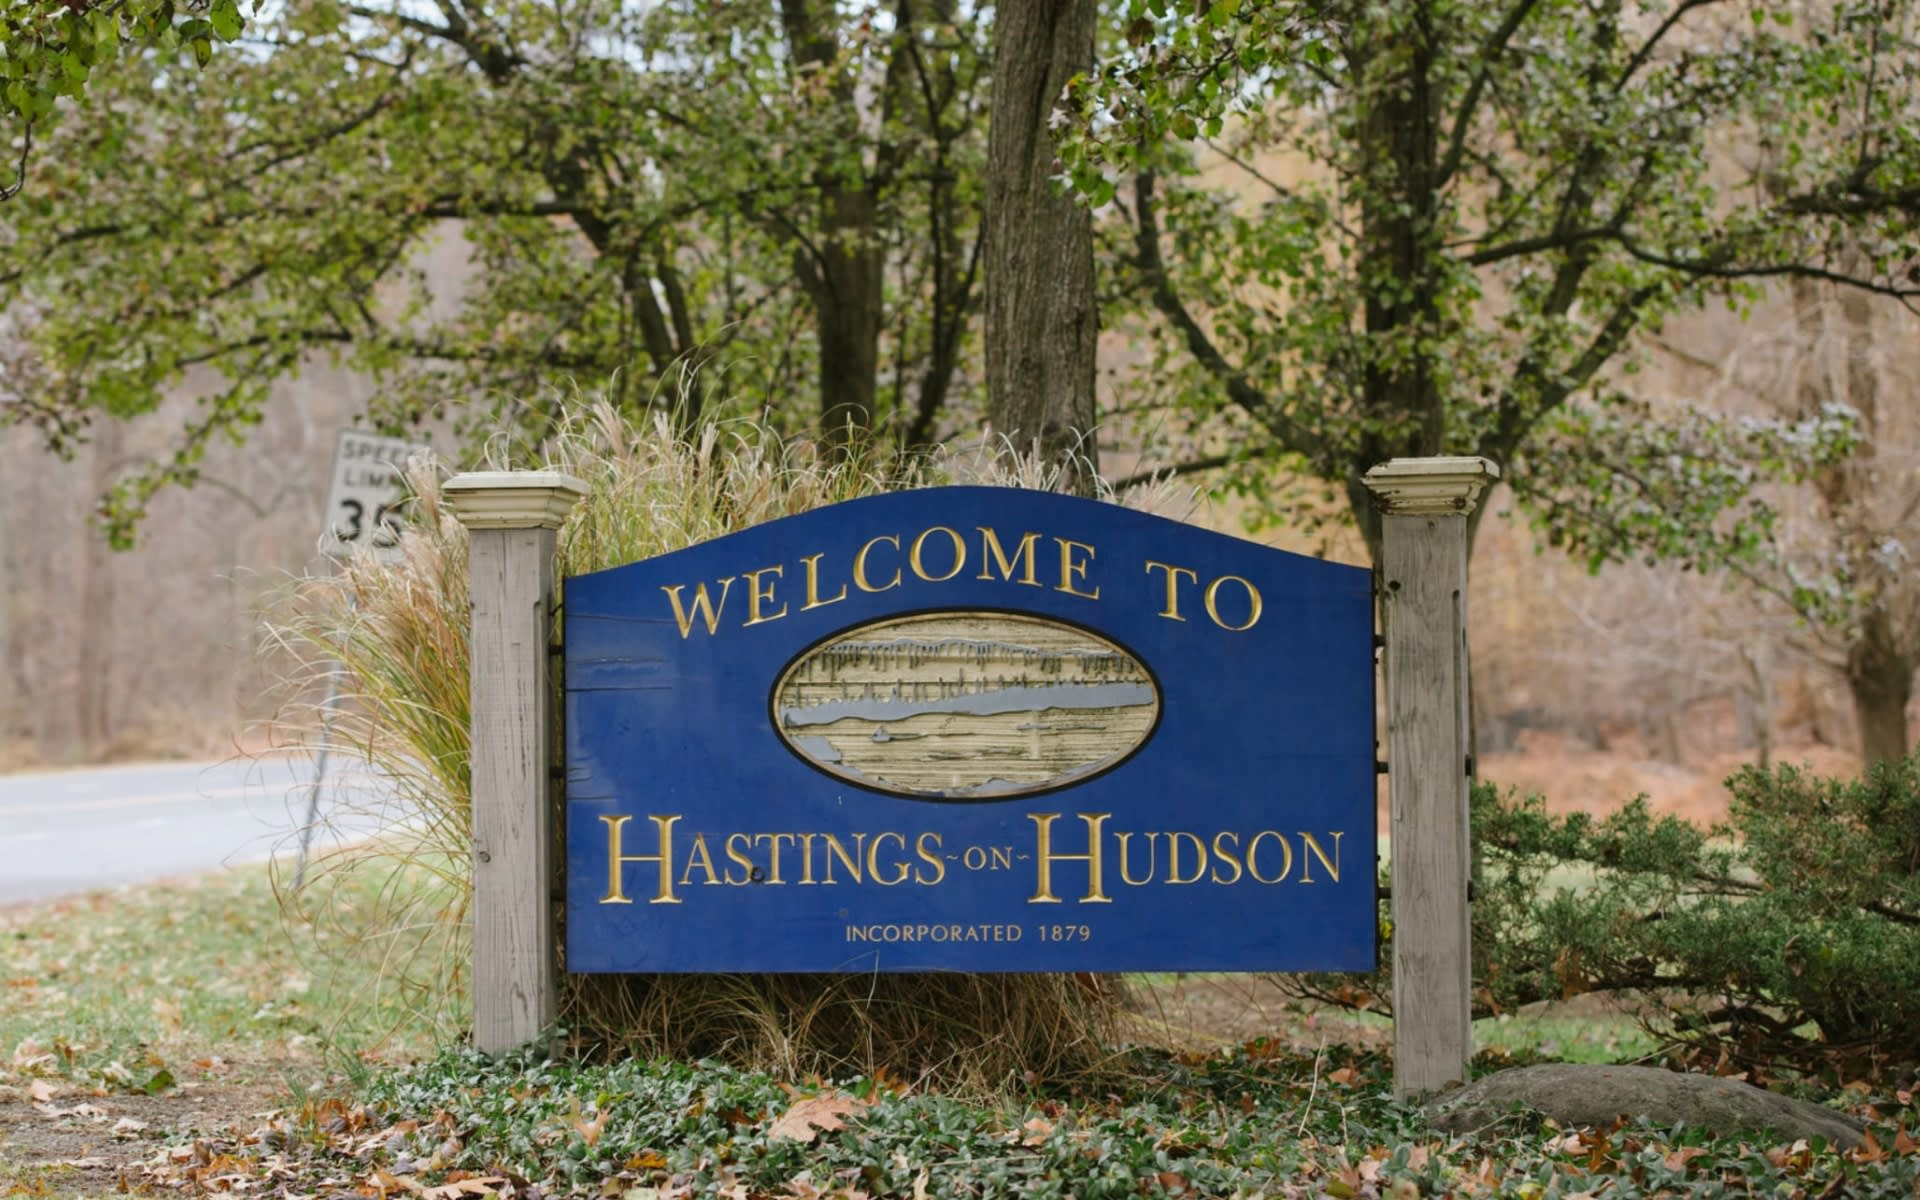 Hastings on Hudson picture